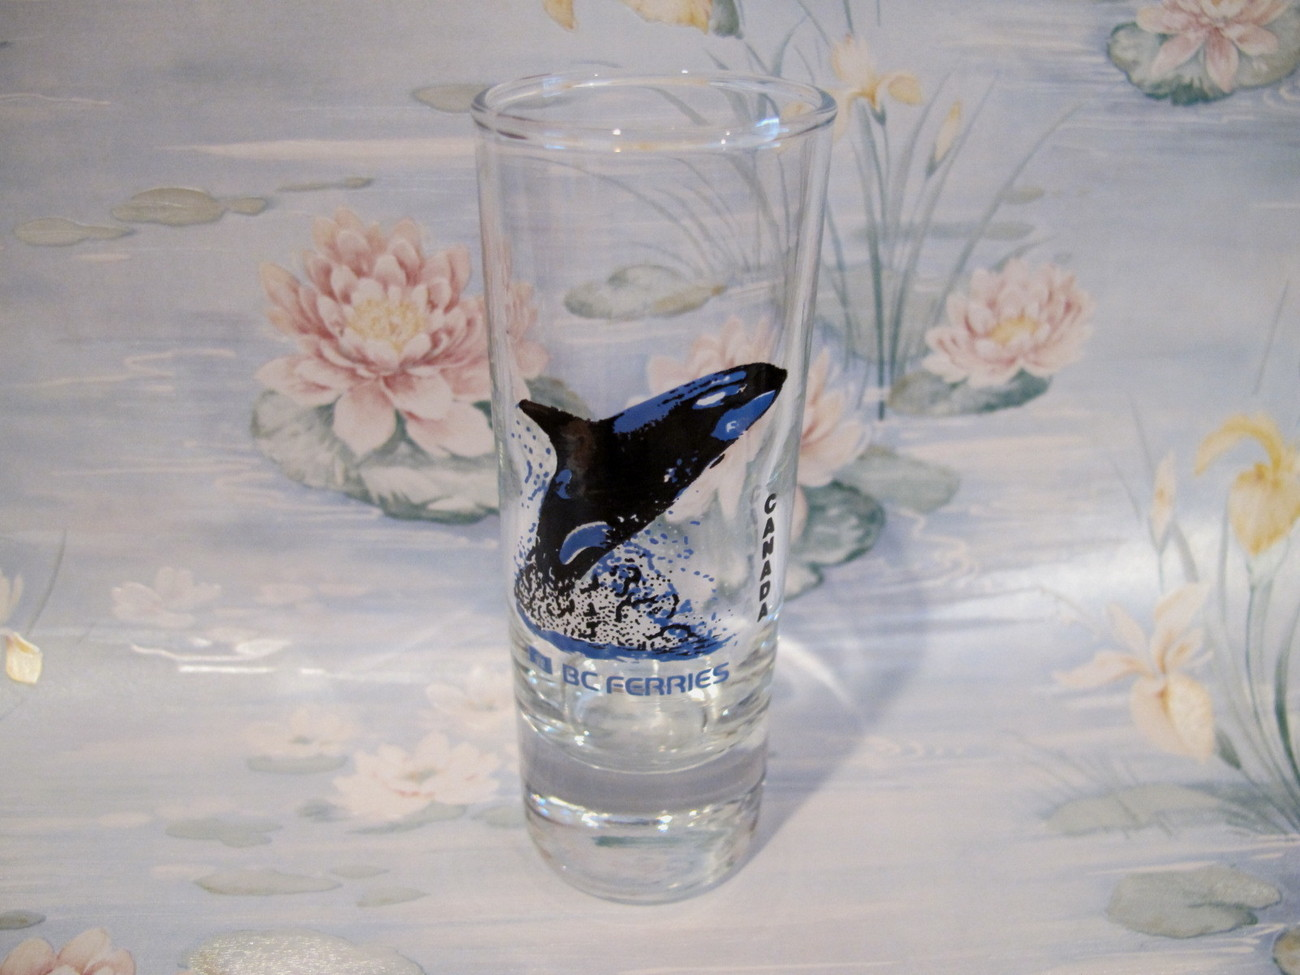 Primary image for BC Ferries Shot Glass Souvenir Collectible British Columbia Ferry Whale